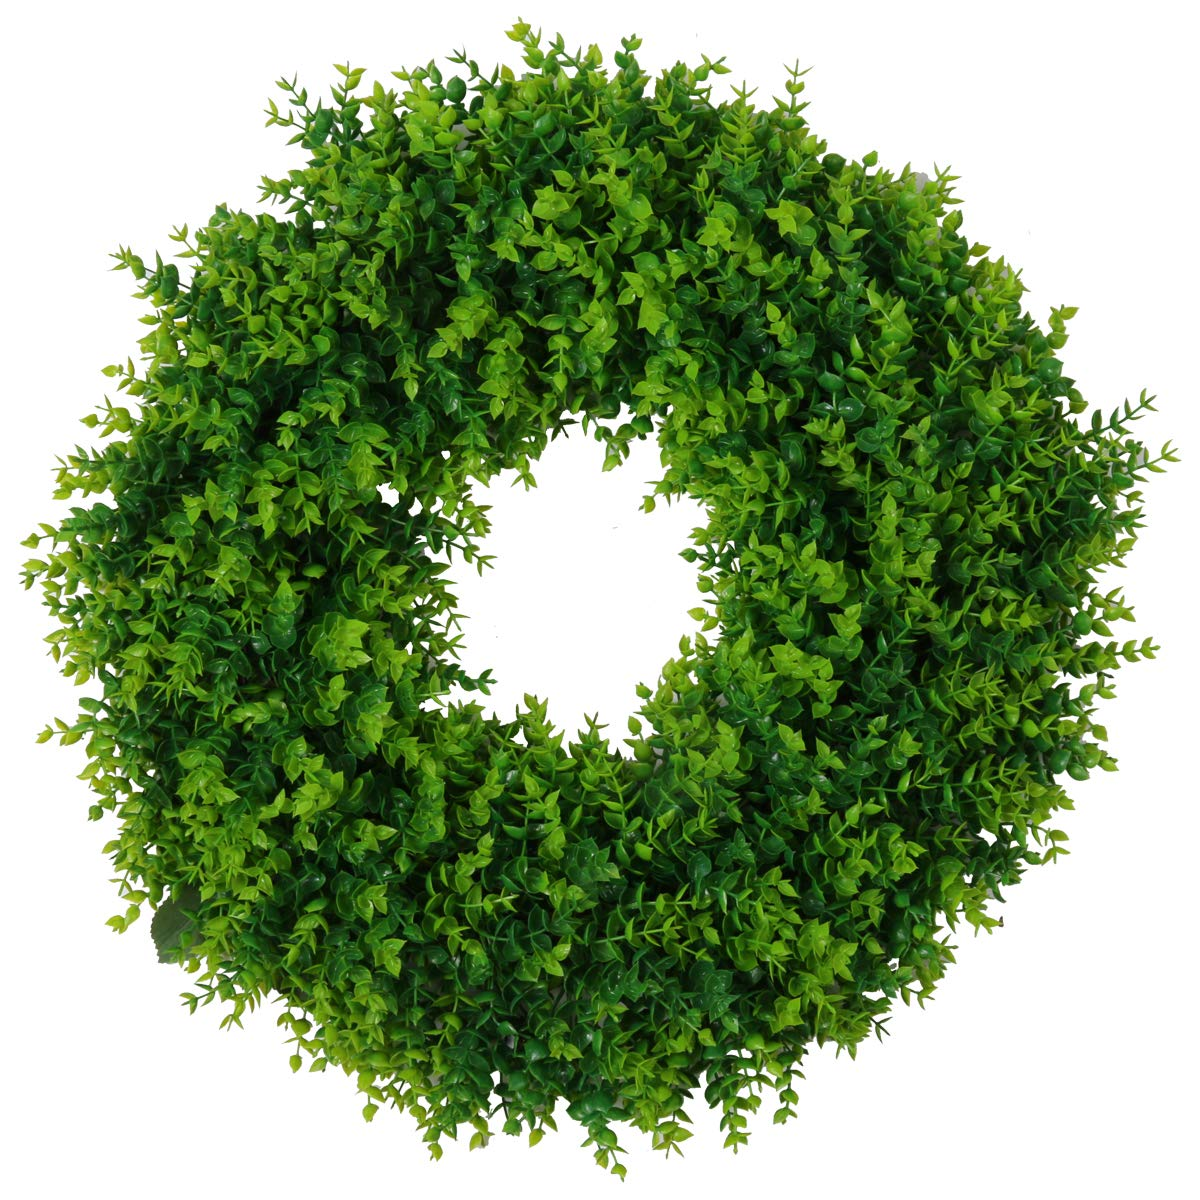 U'Artlines 20'' Artificial Greenery Wreath Plants Spring Summer Backdrops Ornaments Garland Front Door Wreaths Display for Home/Wall/Christmas/Party/Festival Decor (20'', Pattern 1) by U'Artlines